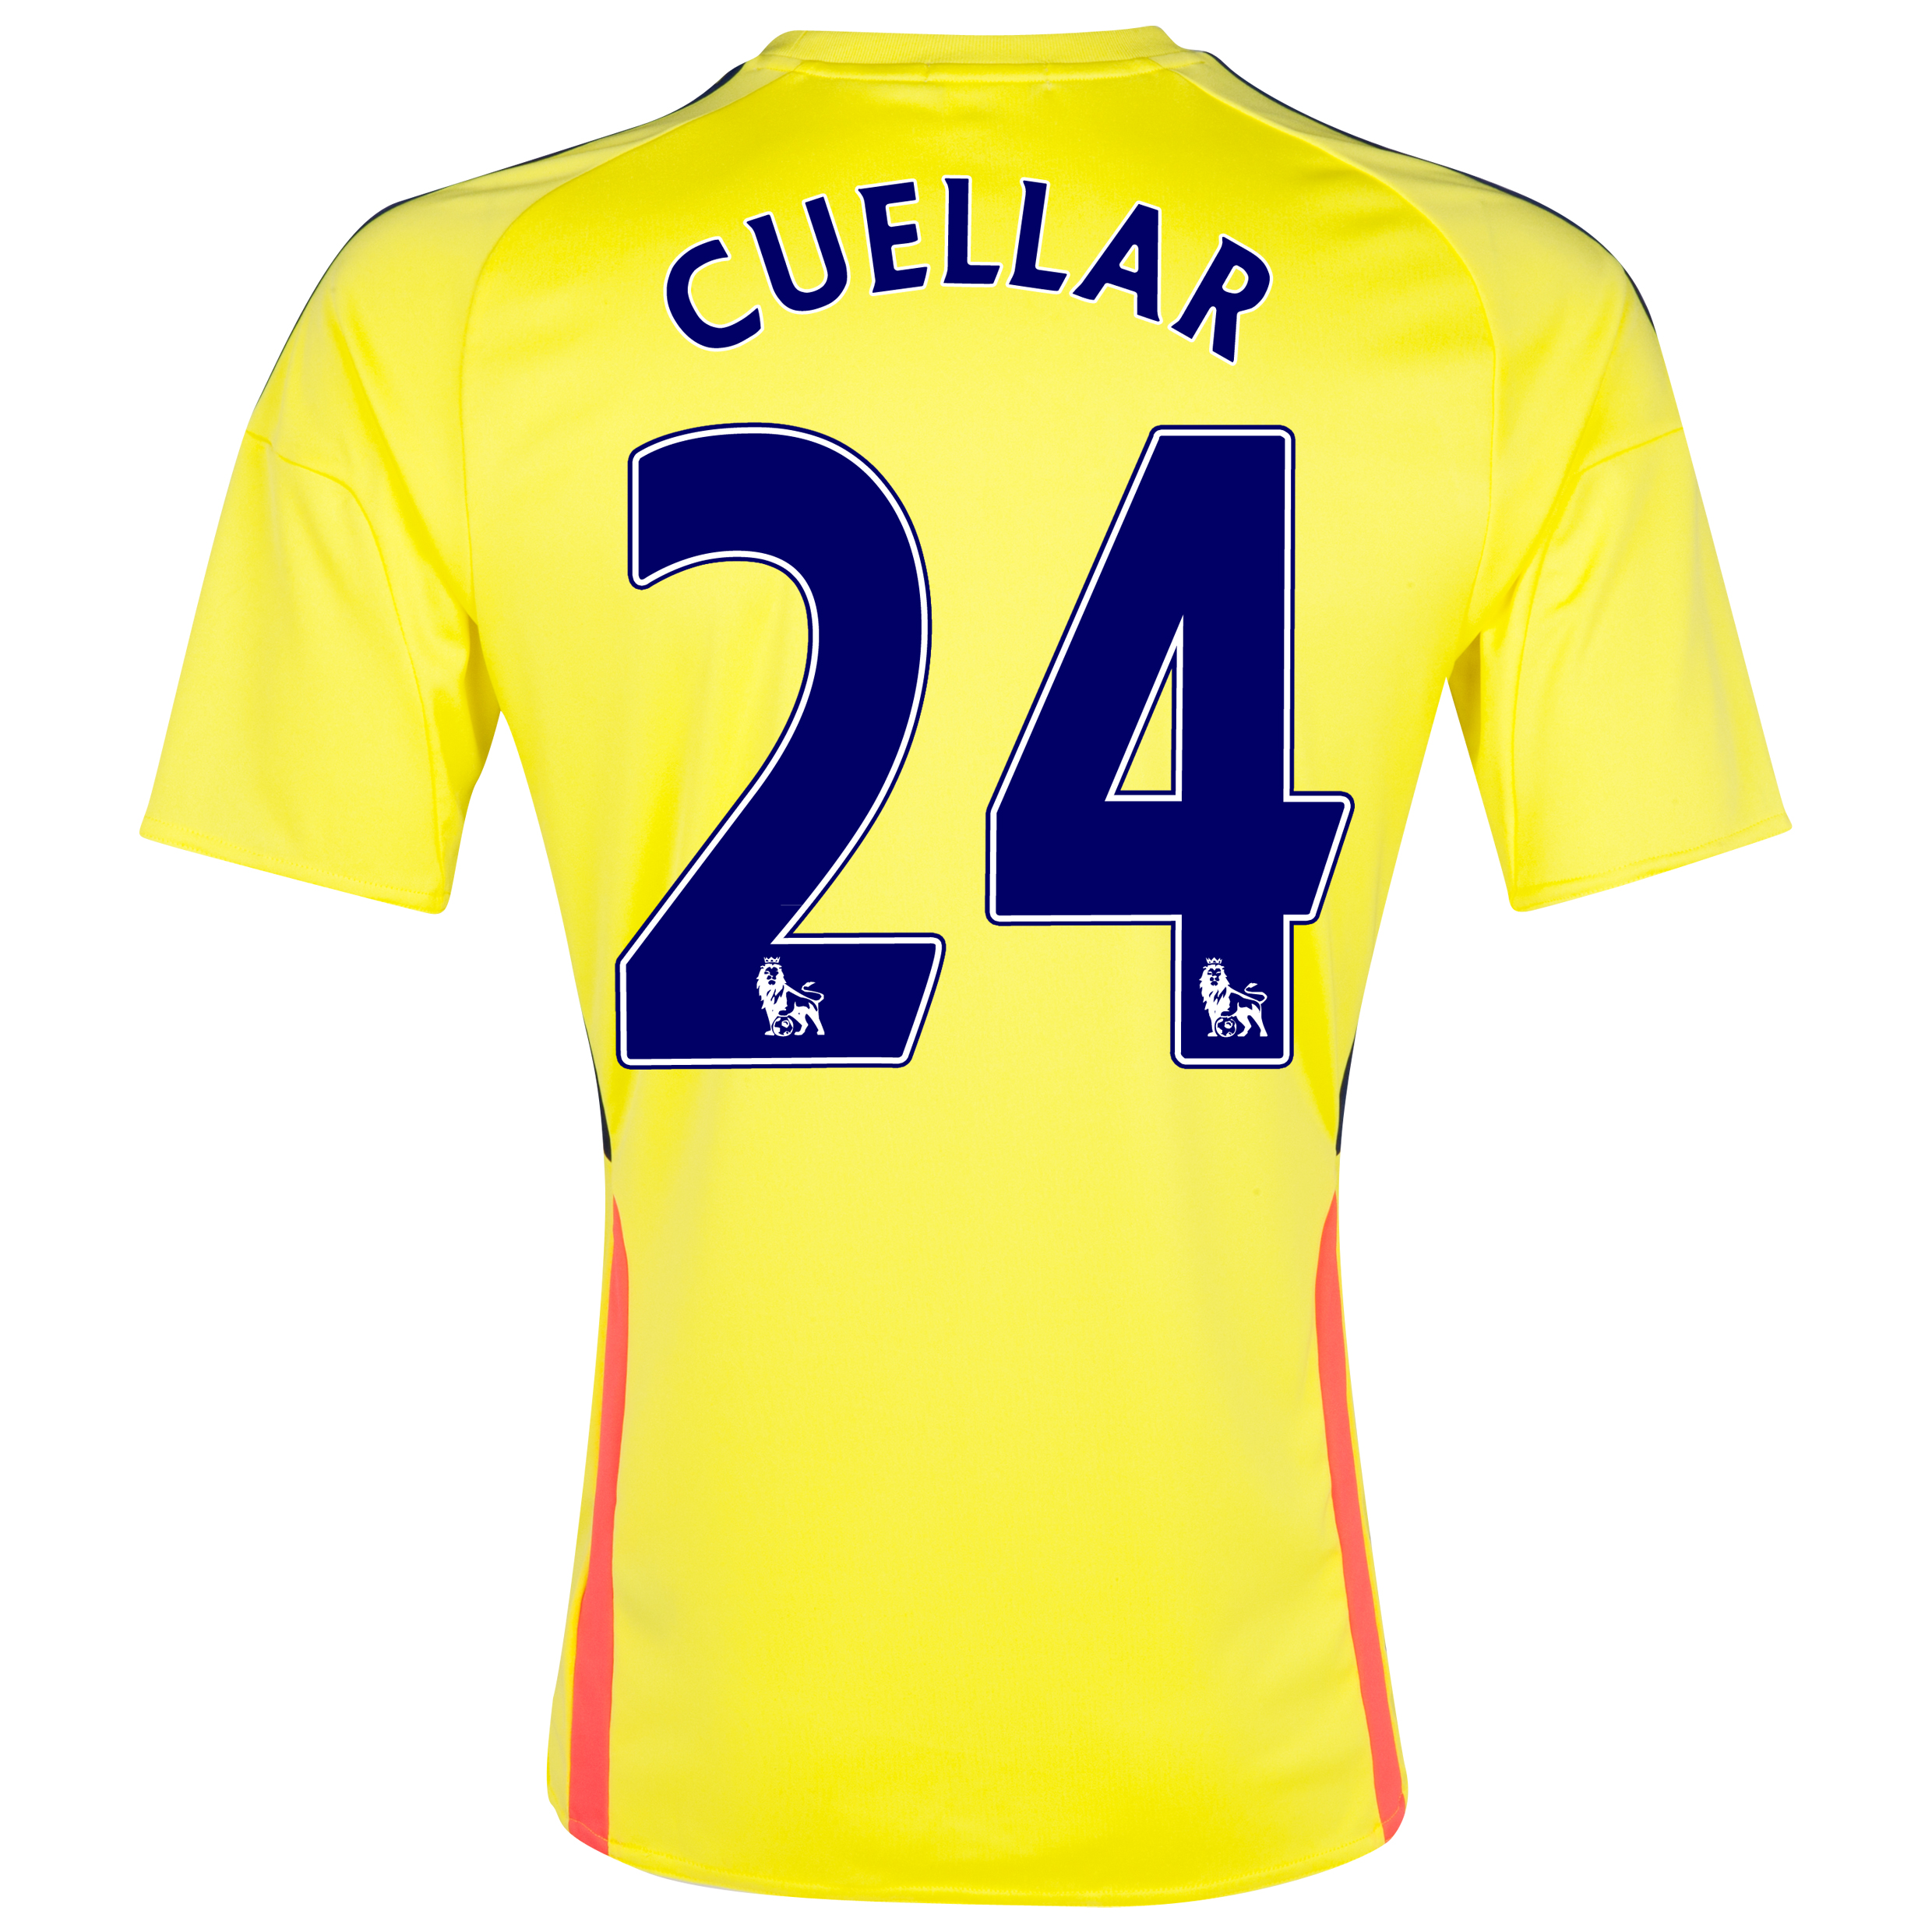 Sunderland Away Shirt 2013/14 with Cuellar 24 printing